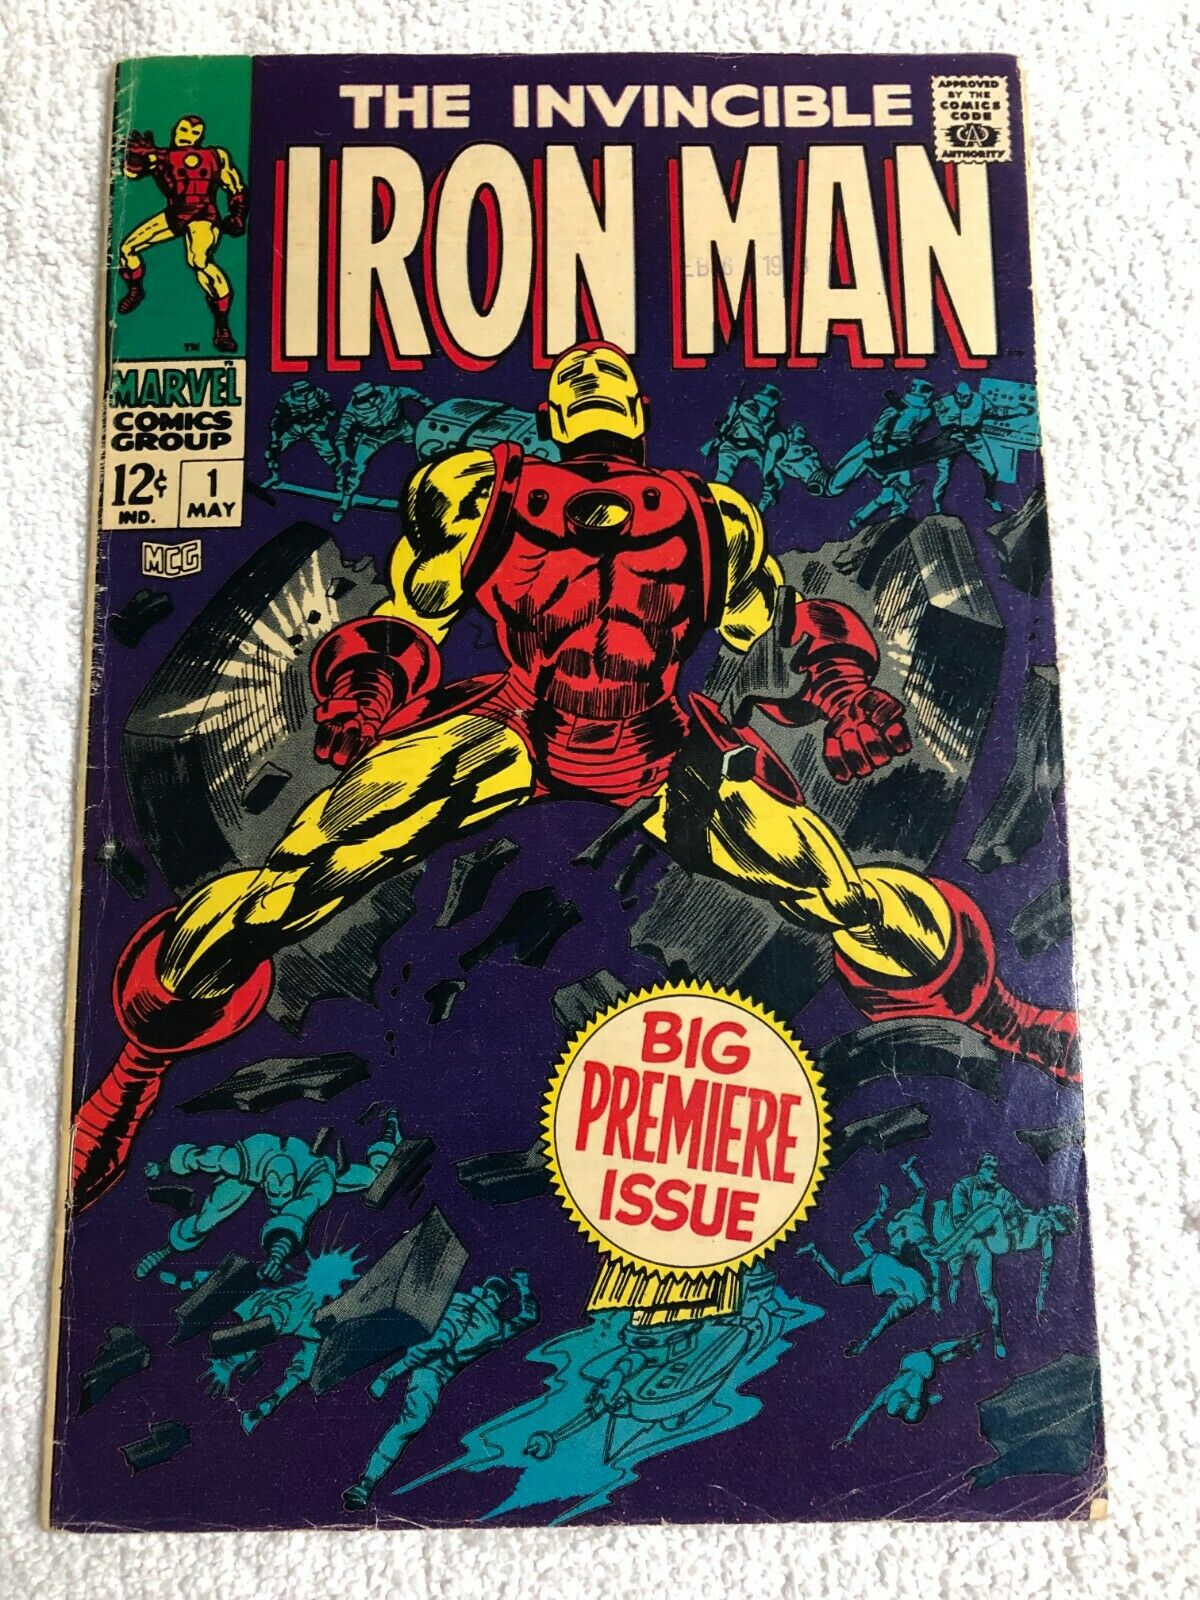 Iron Man (vol 1) lot of 96 issues; 1 to 100